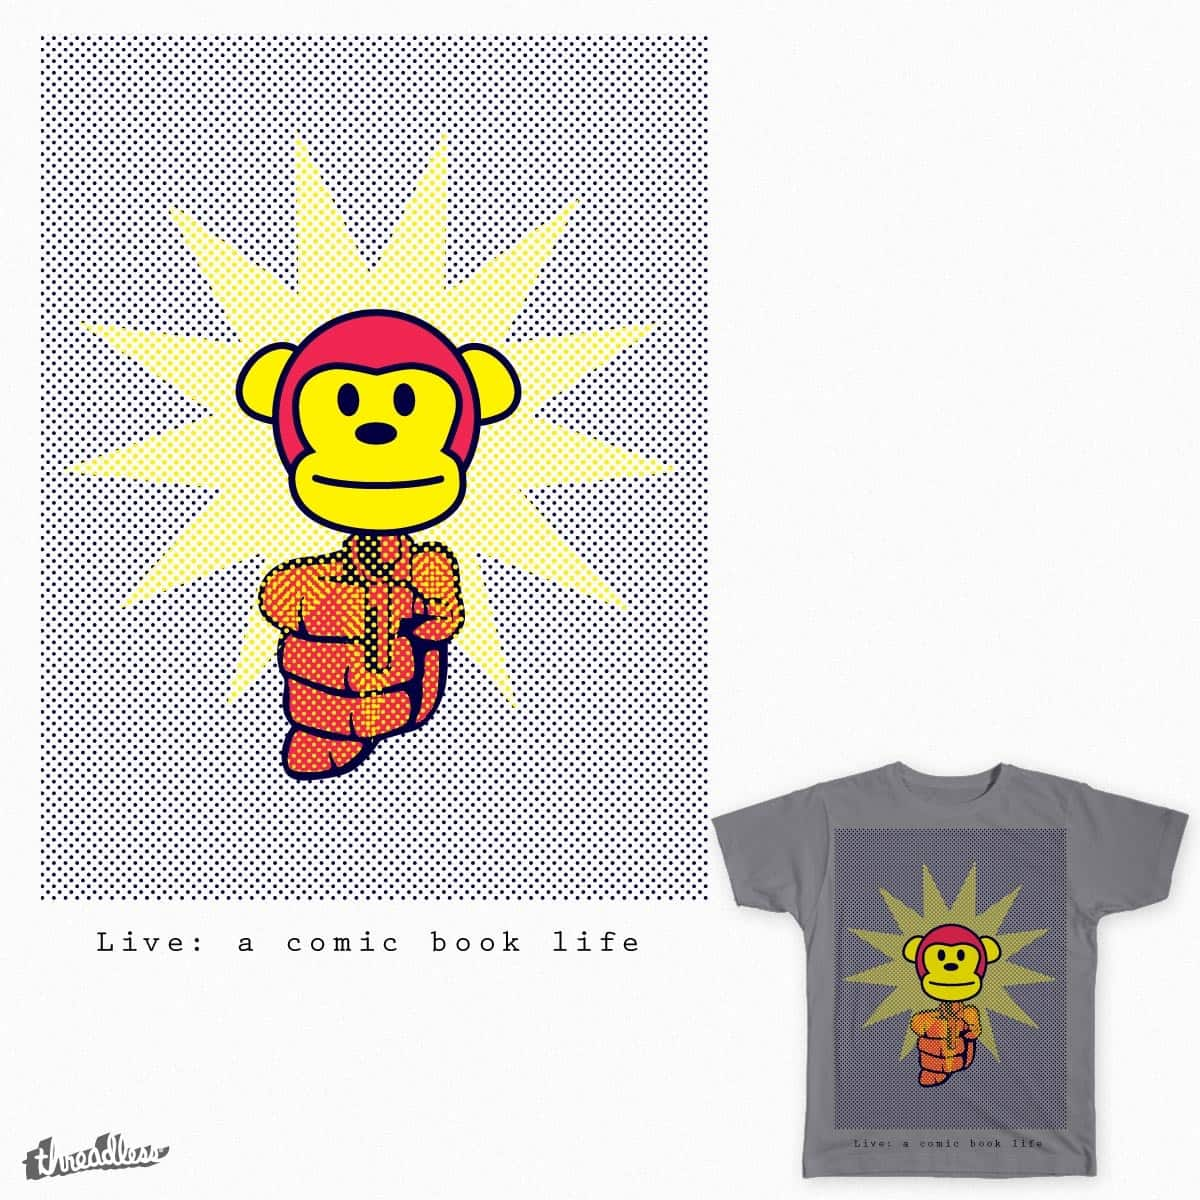 Live: A comic book life by workartkbr on Threadless